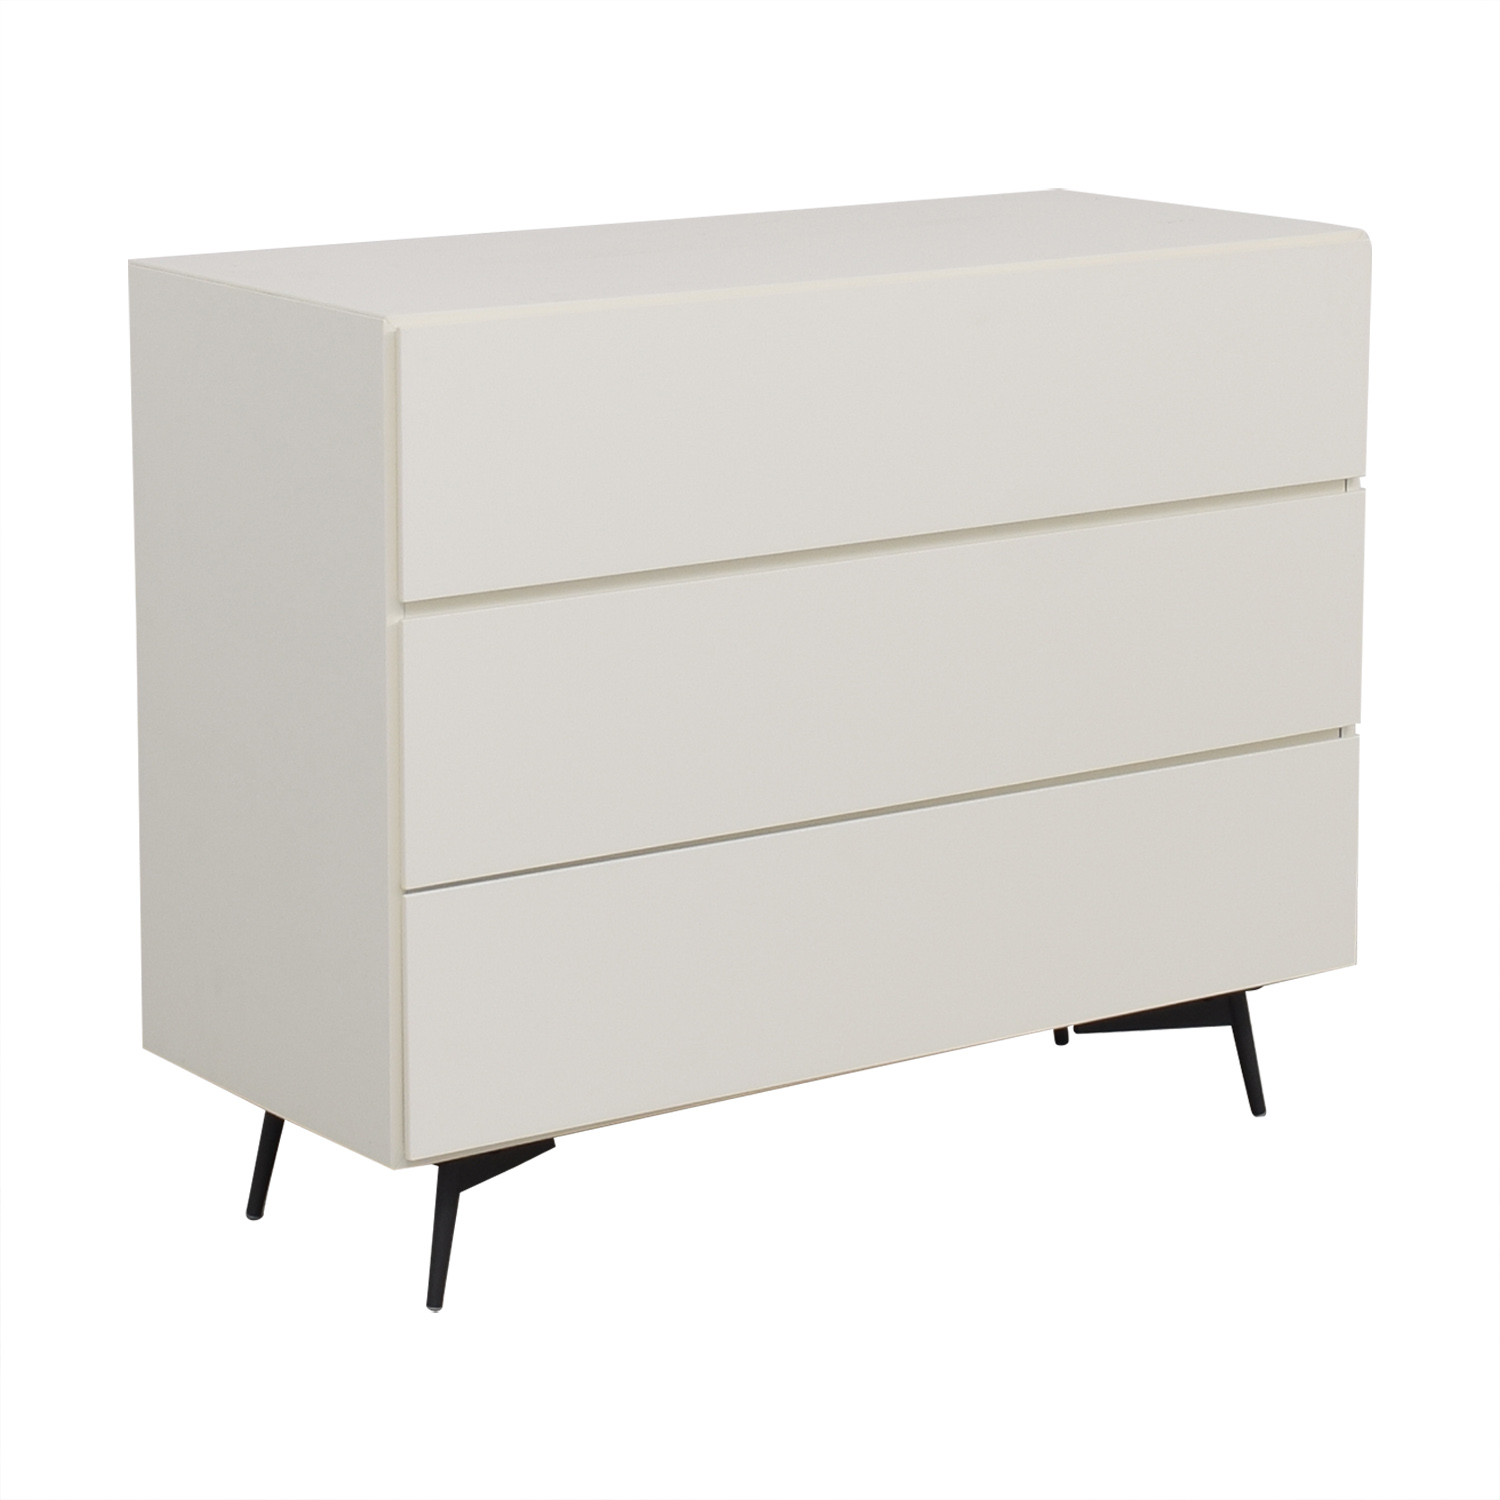 BoConcept BoConcept Lugano Chest used